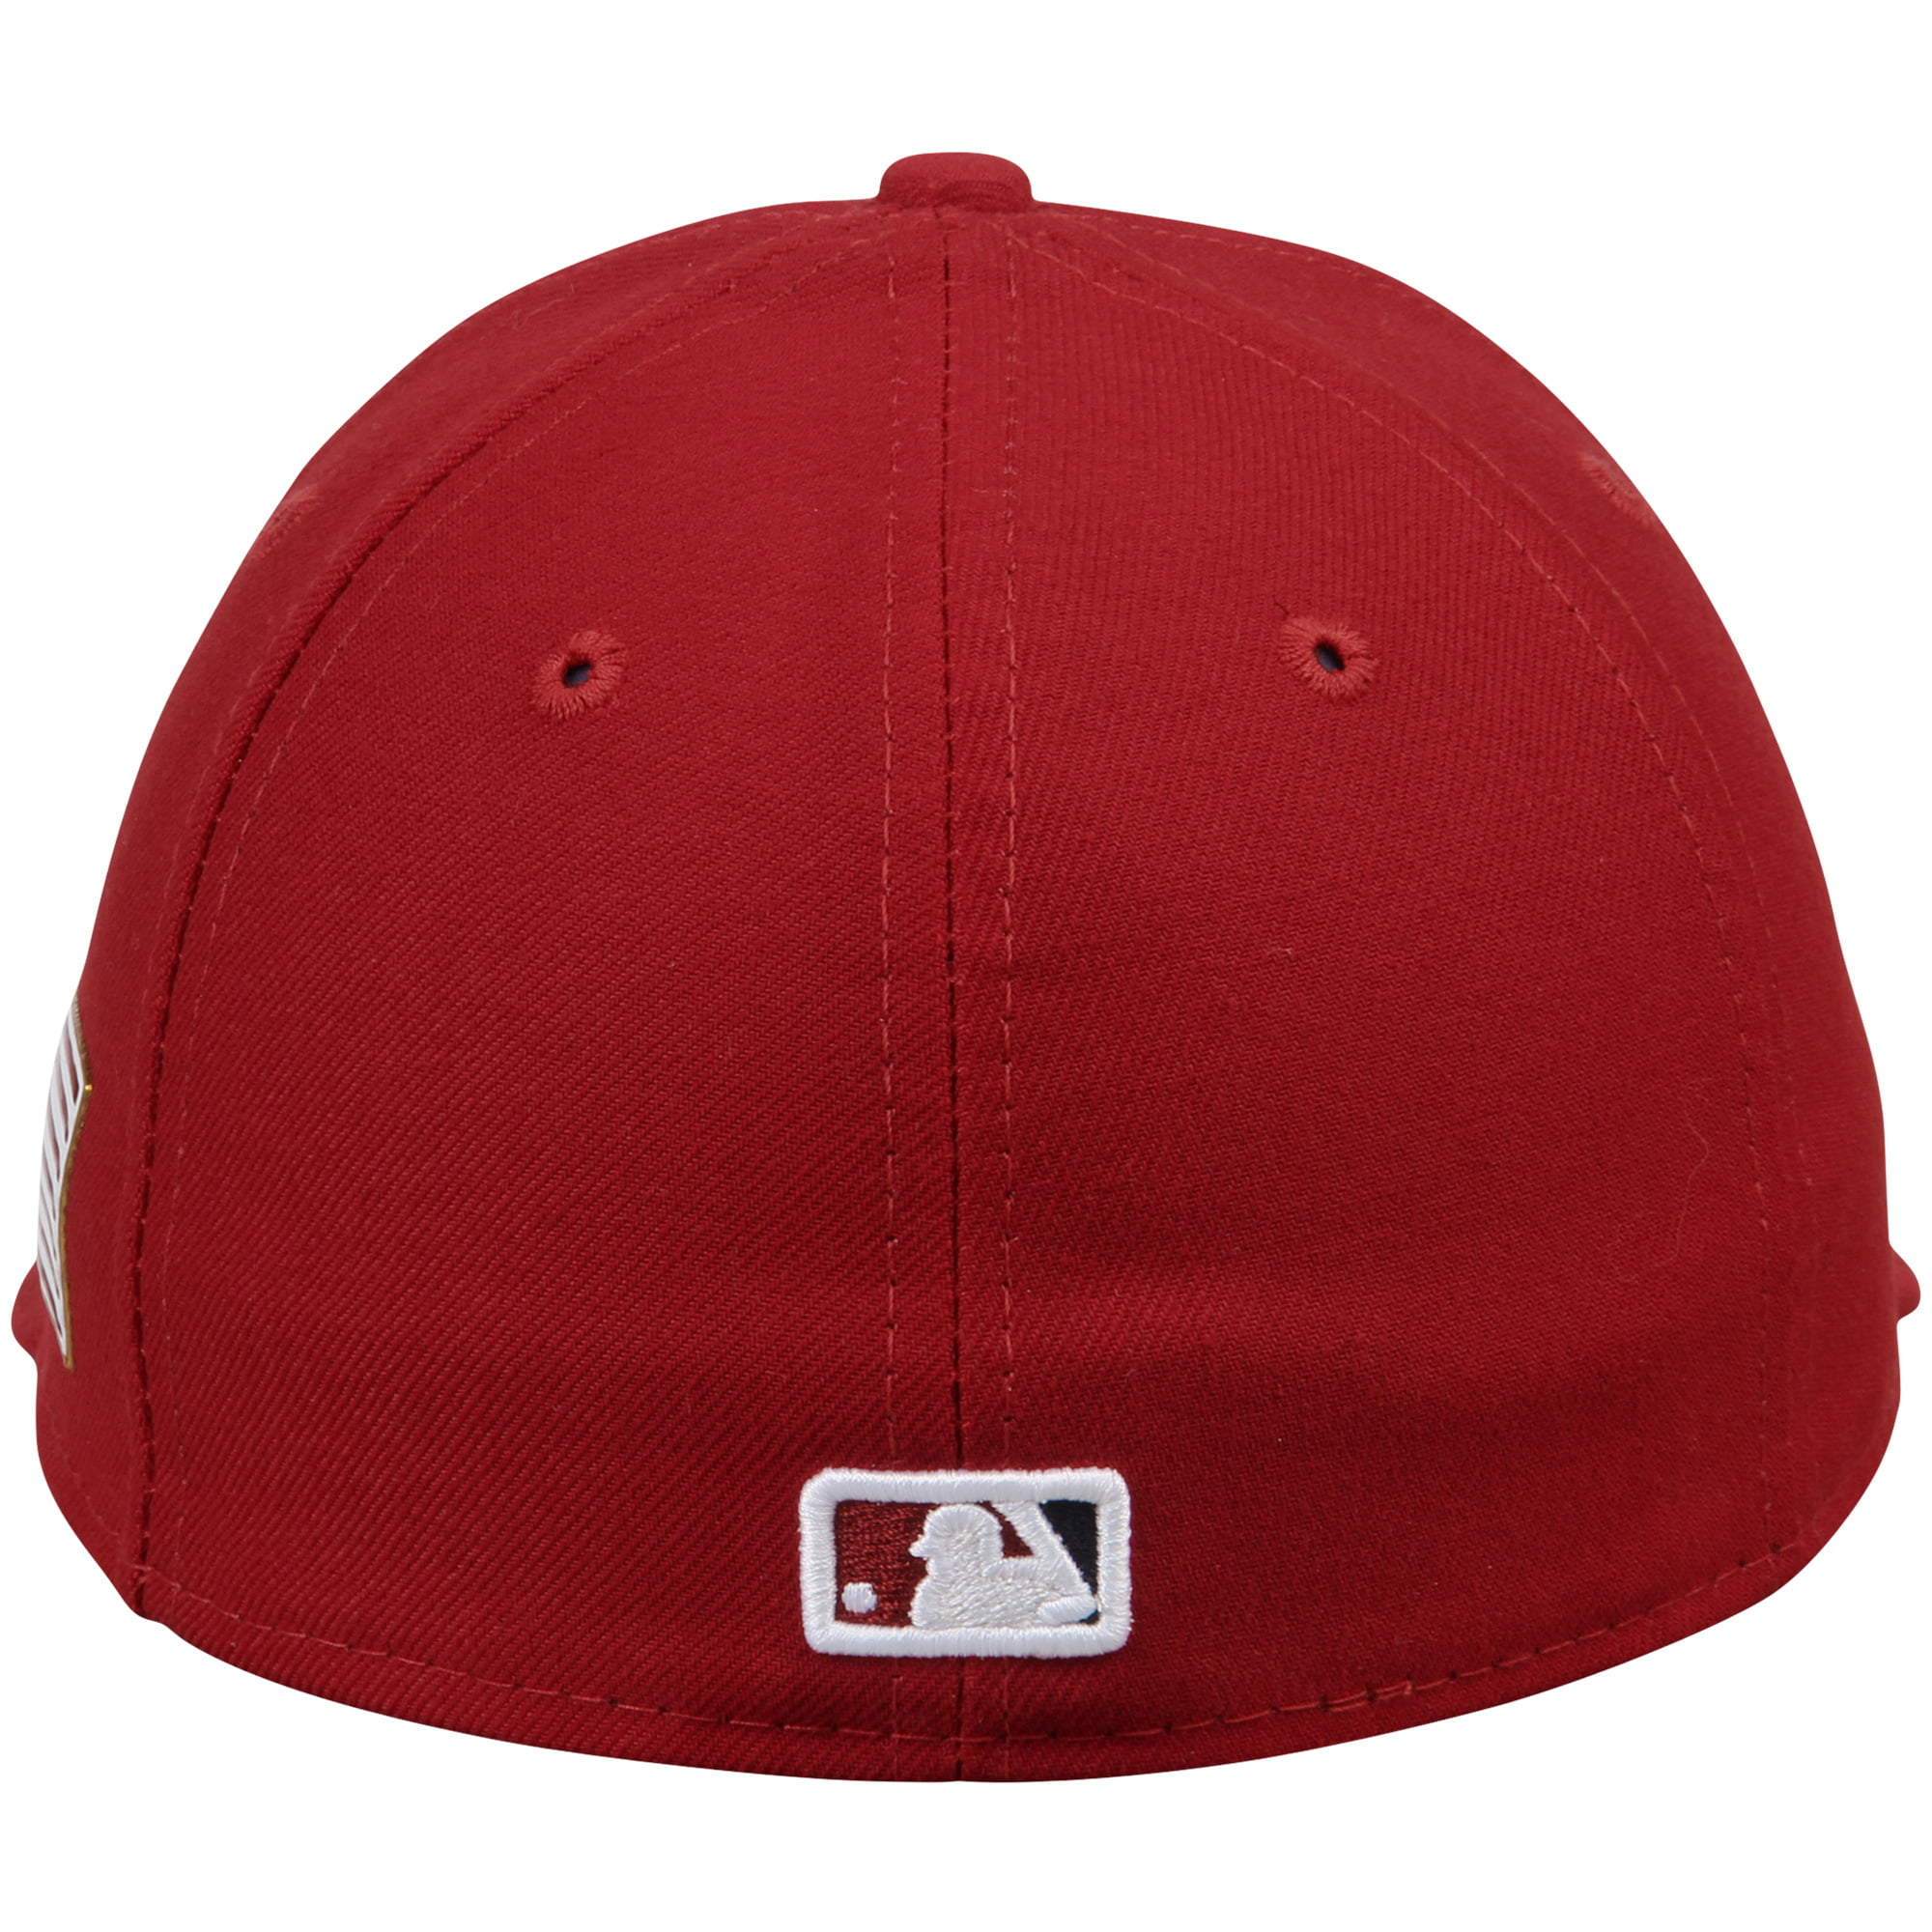 info for 738d3 5a067 Washington Nationals New Era Authentic Collection On-Field 59FIFTY Low  Profile Flex Hat with 9 11 Side Patch - Red - Walmart.com